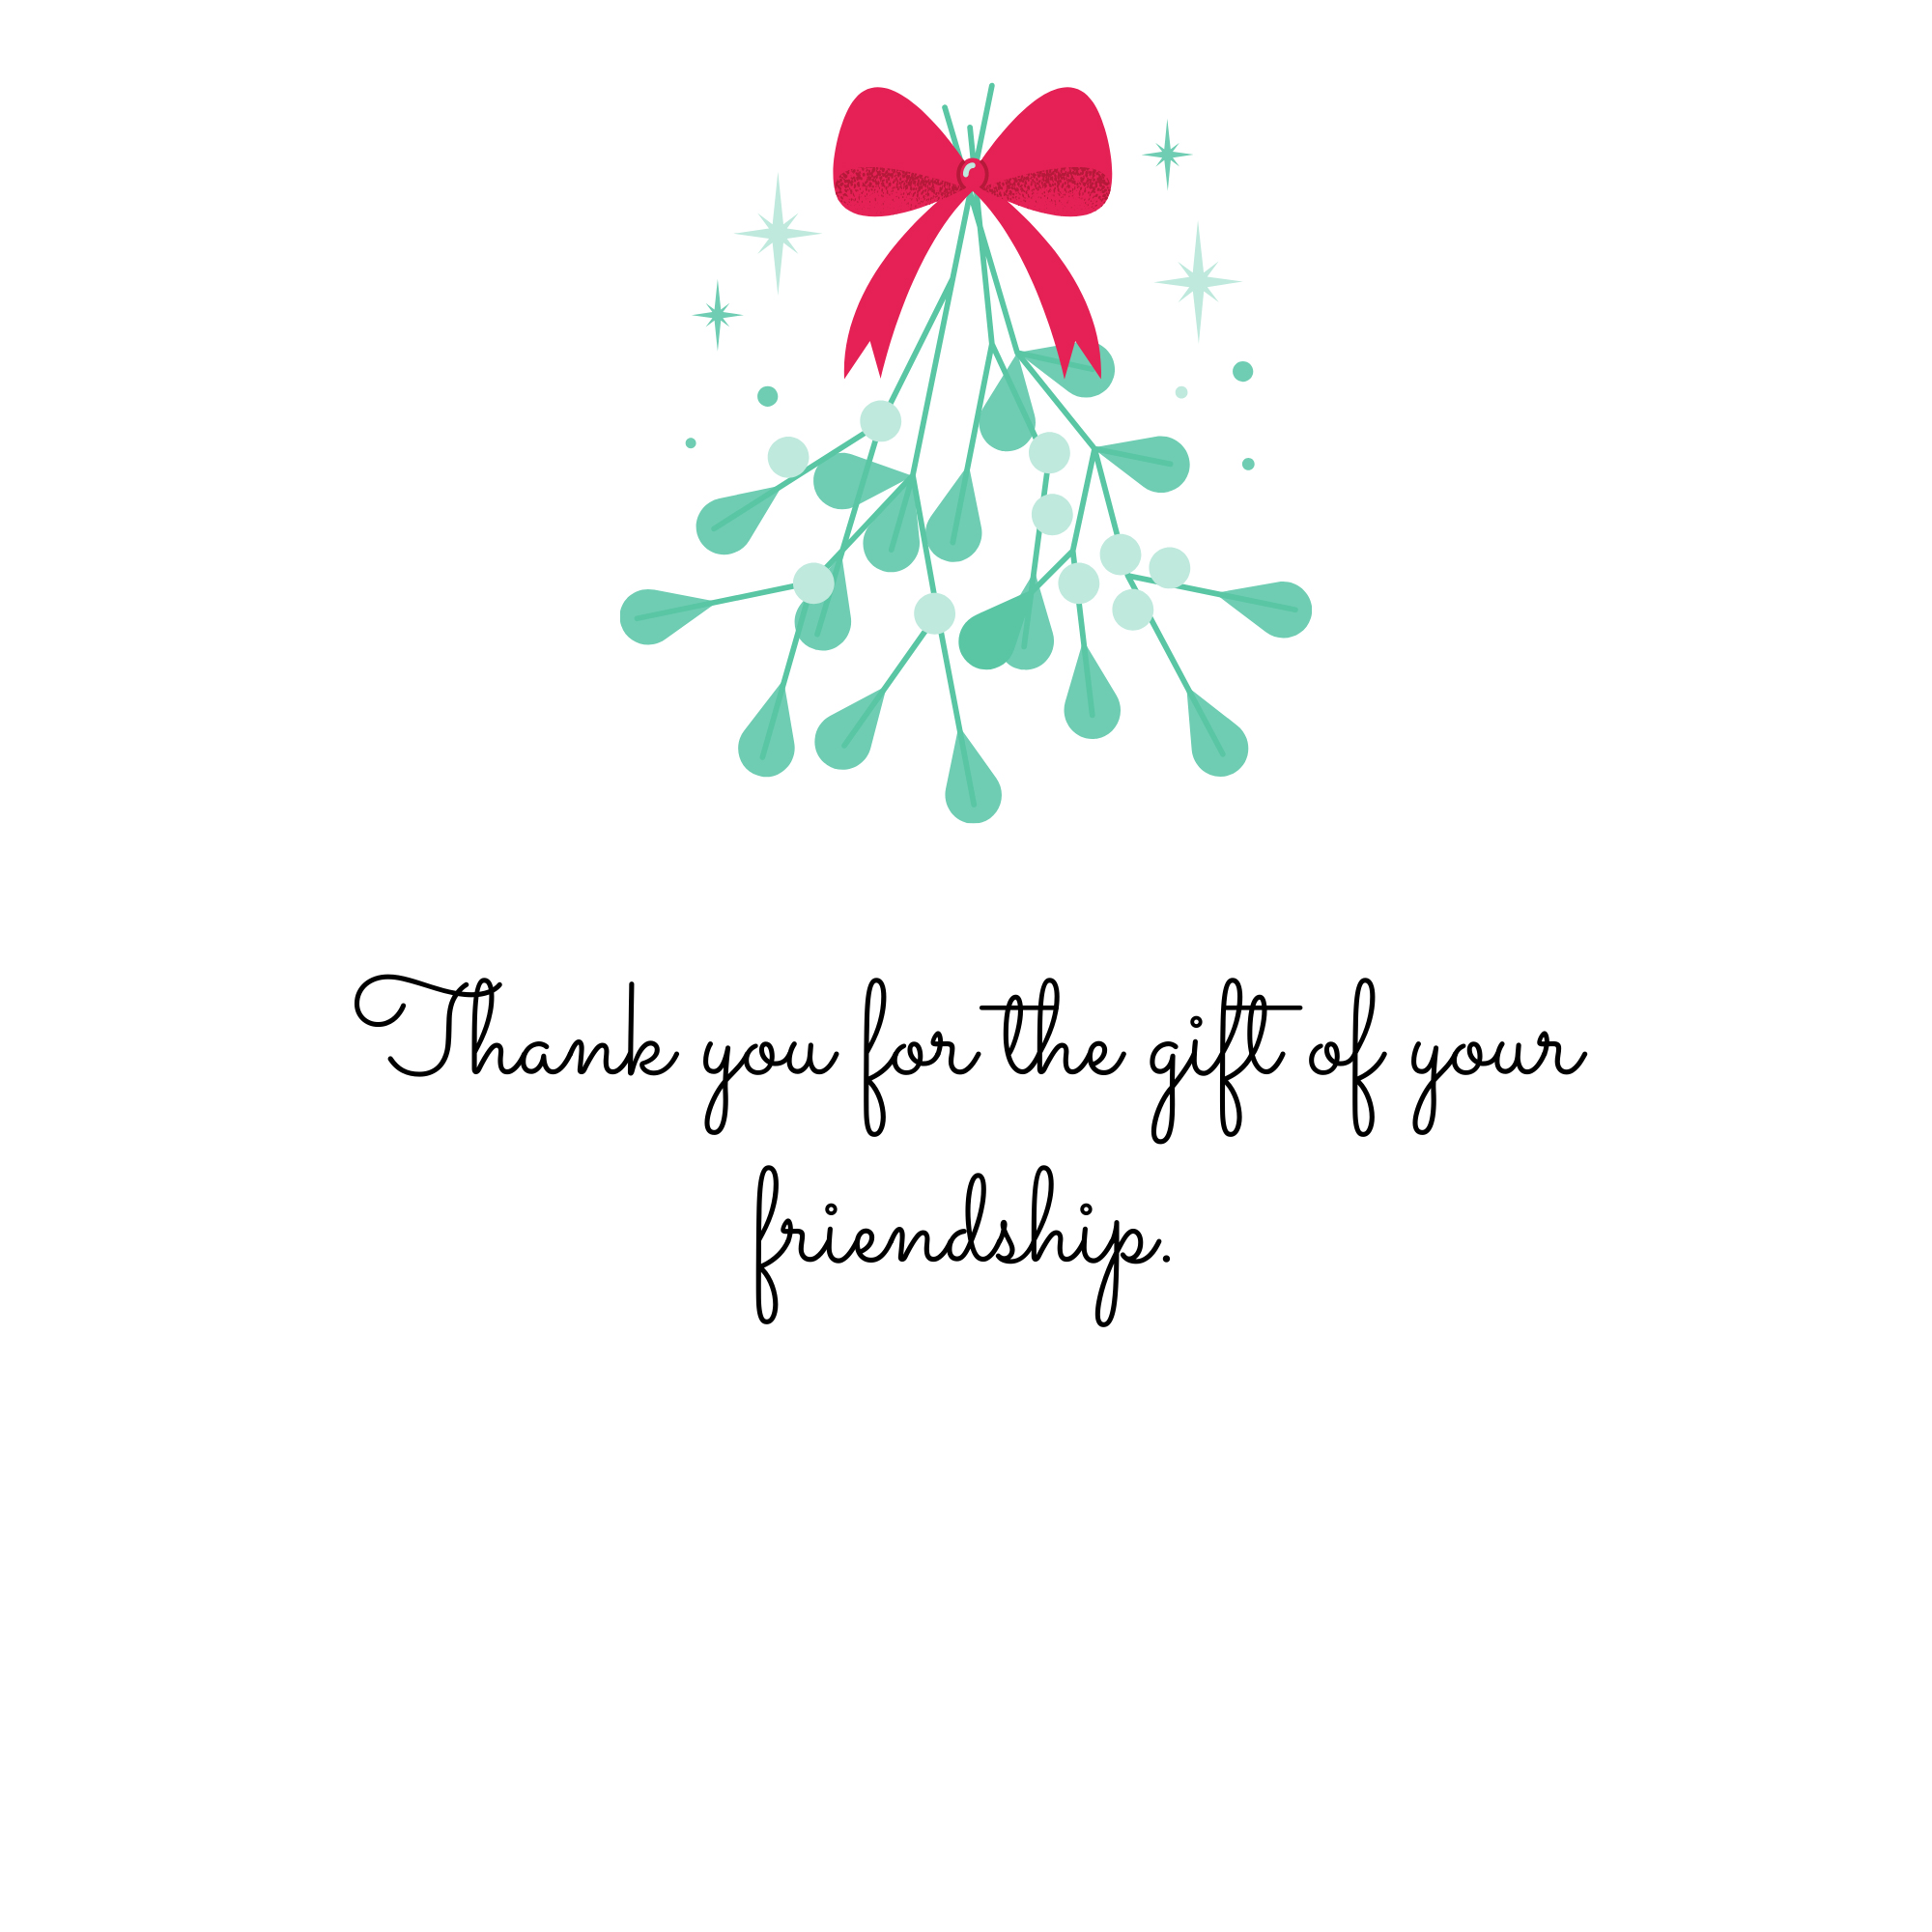 Thank you for the gift of your friendship.